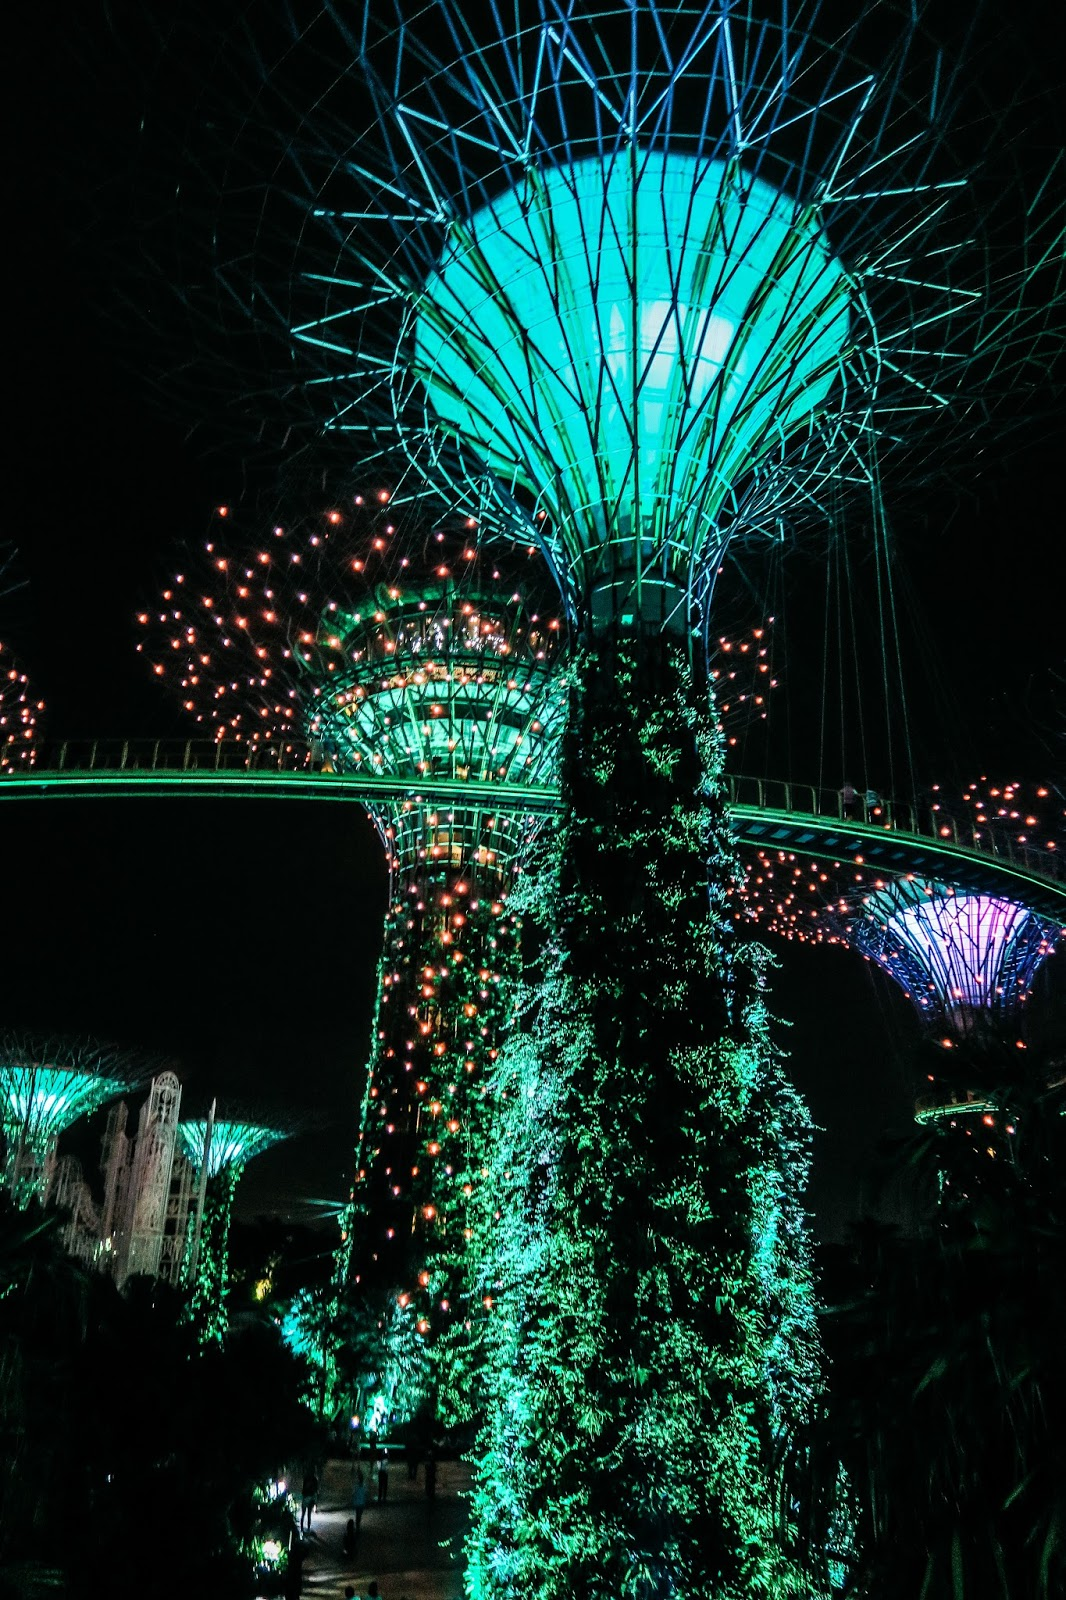 Solar powered Supertrees at Gardens by the Bay, Singapore